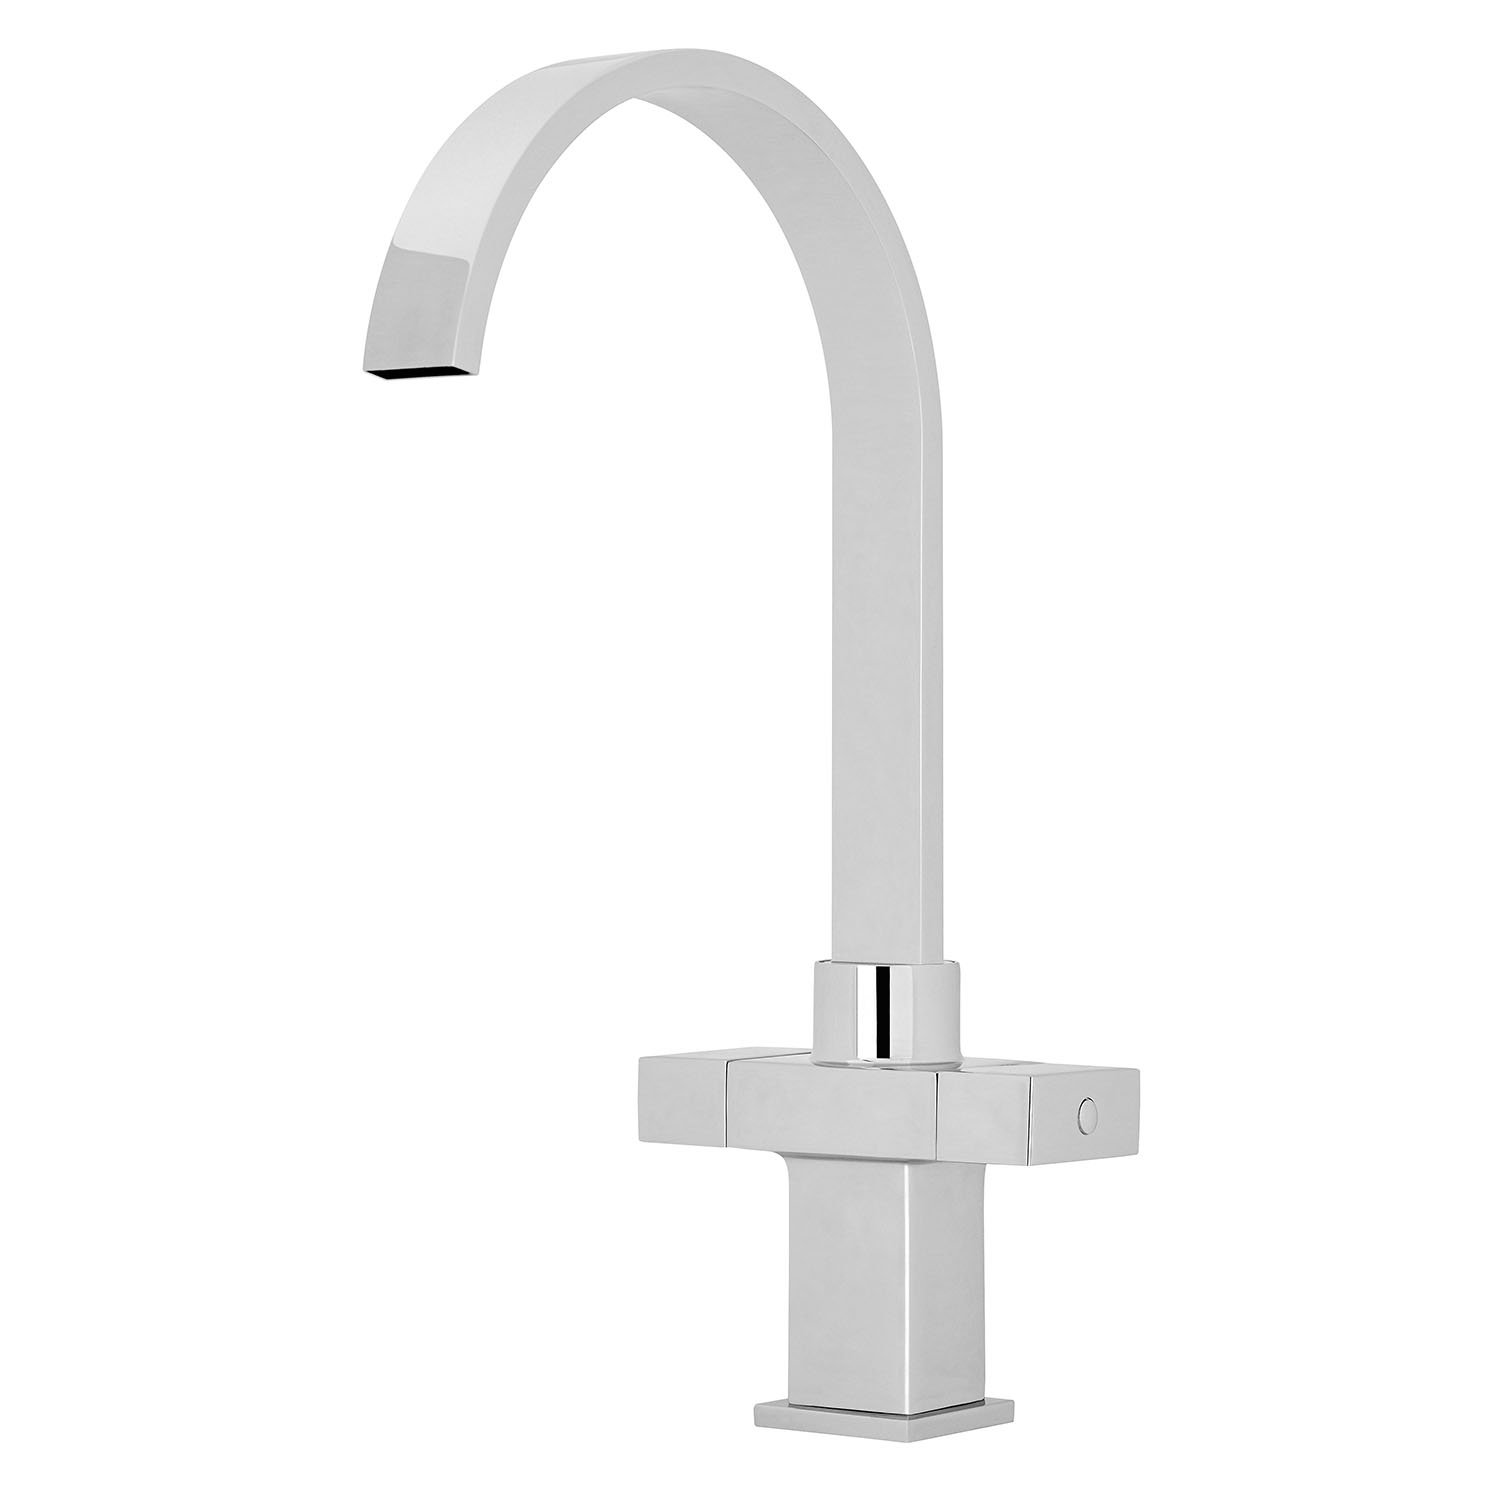 Premier KB324 Kitchen Tap, Silver